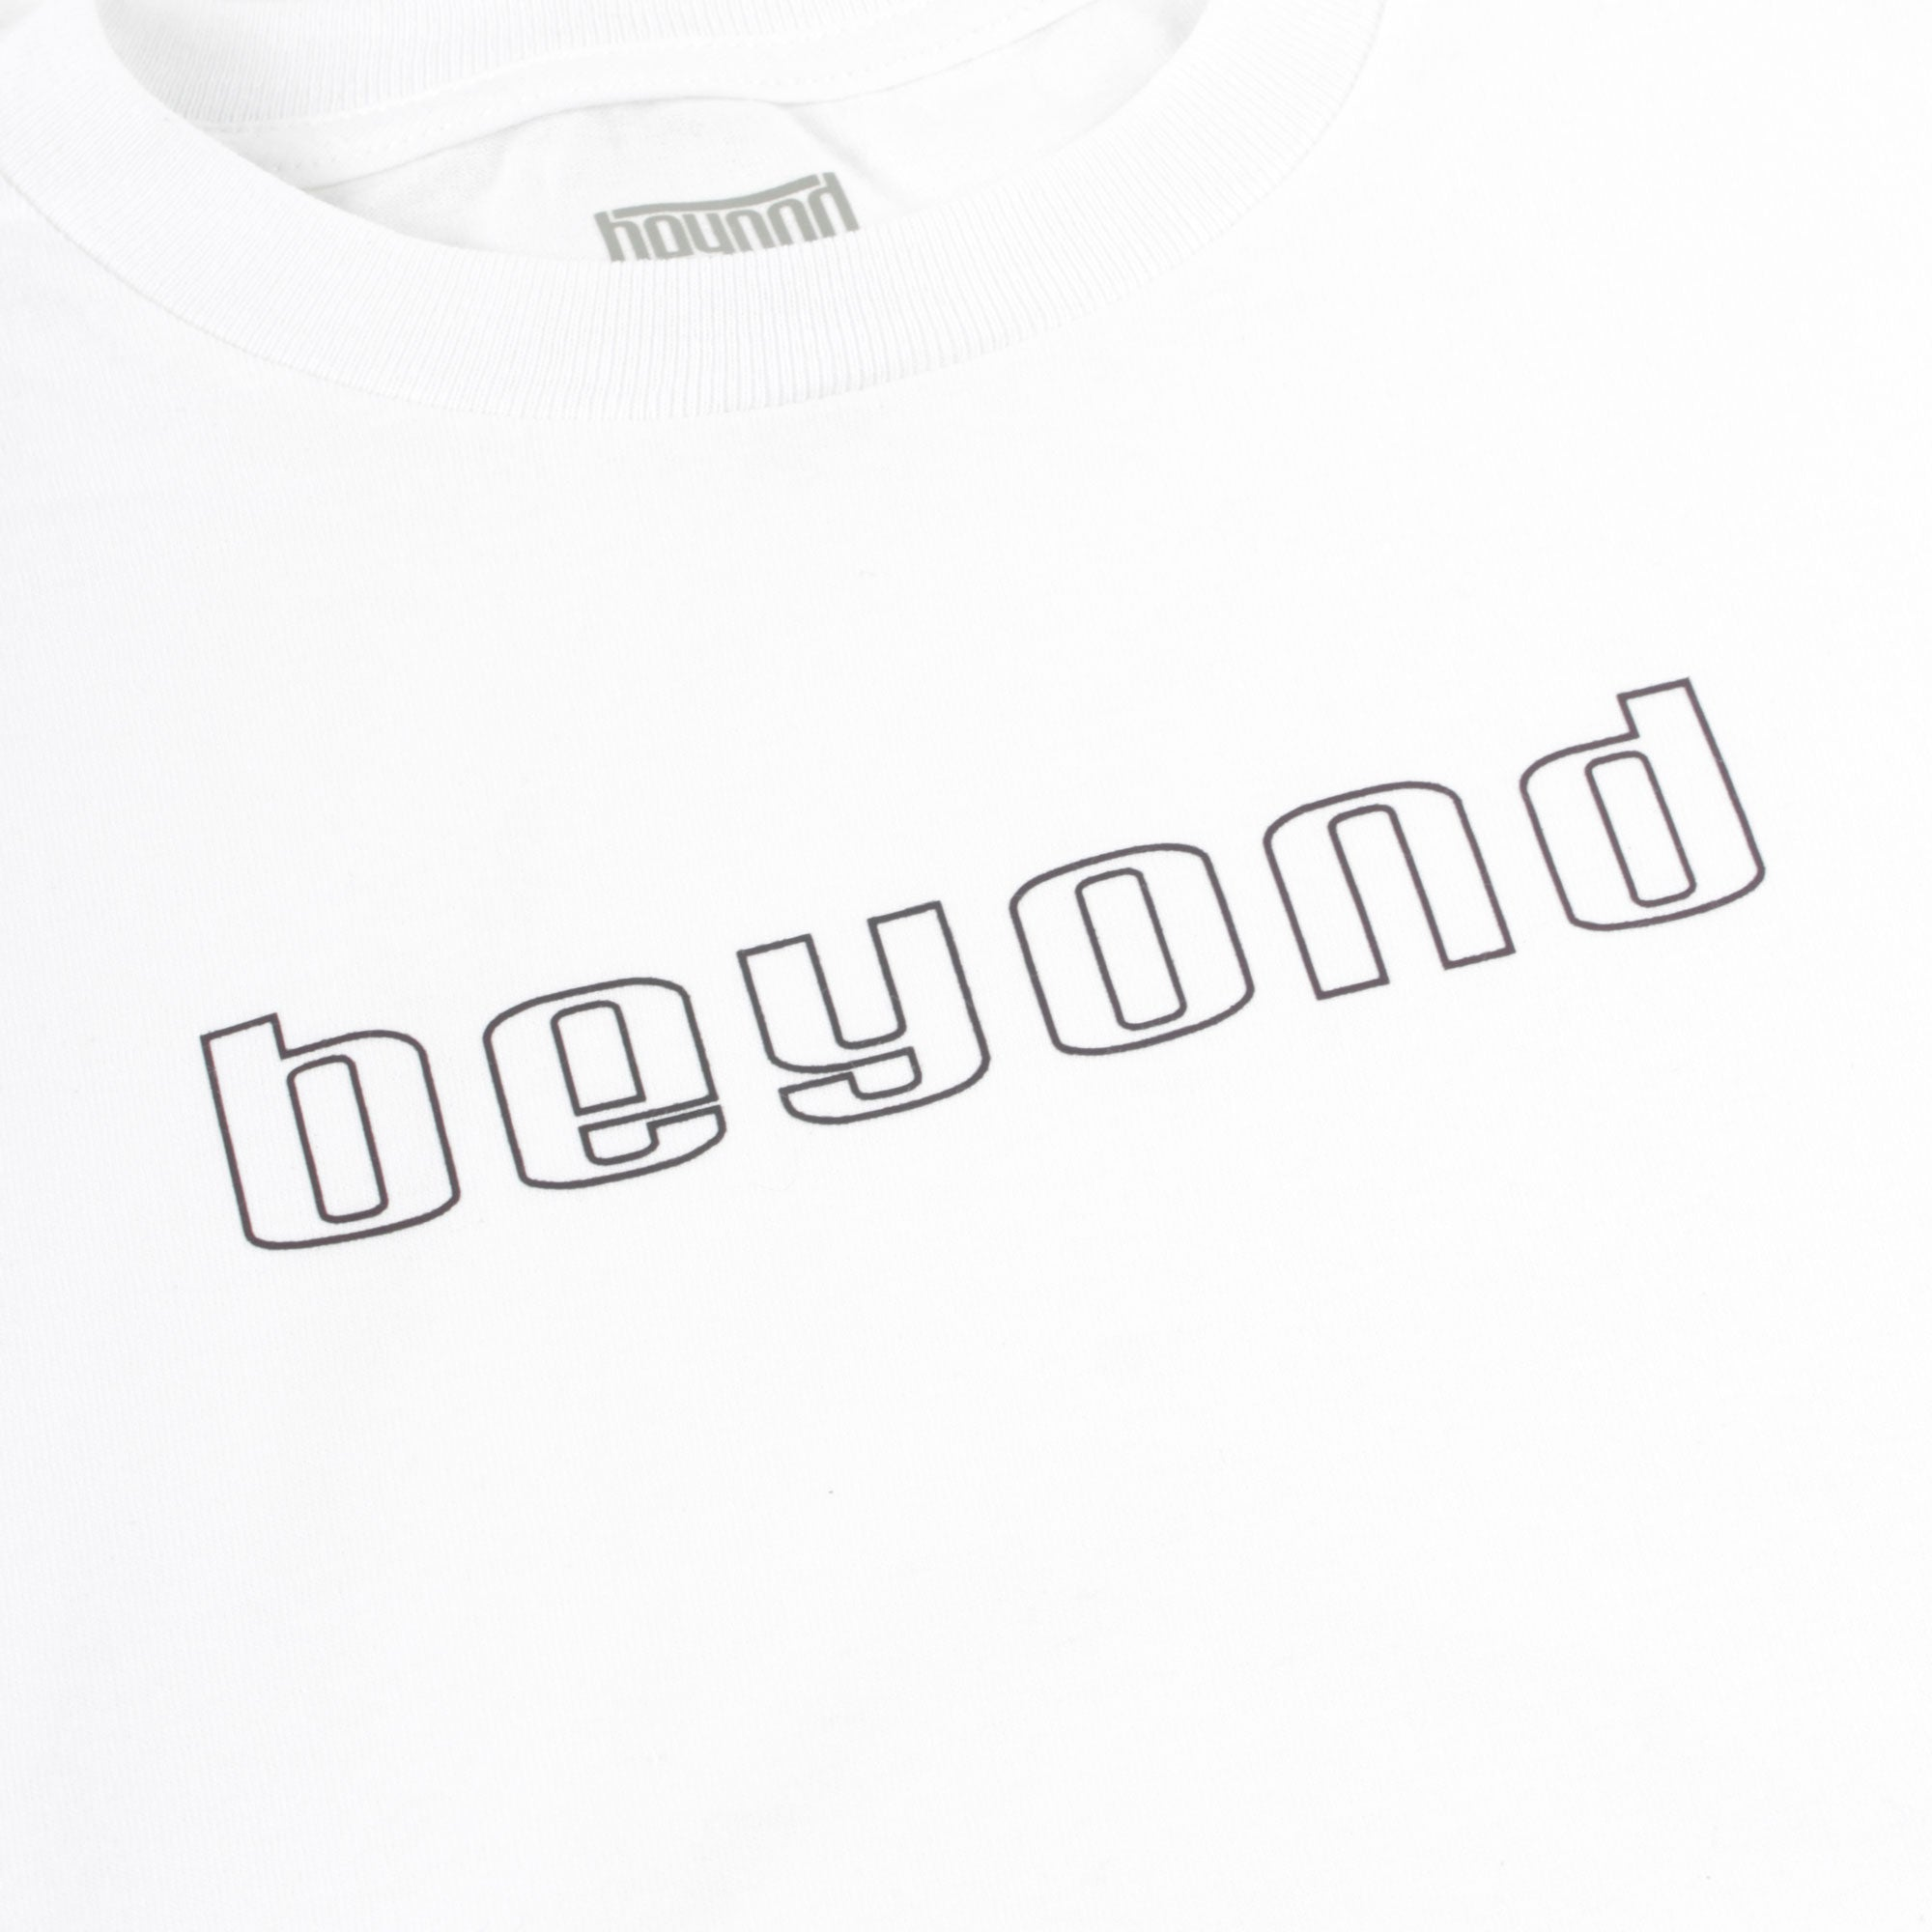 Beyond No Bars 3M Tee Product Photo #2